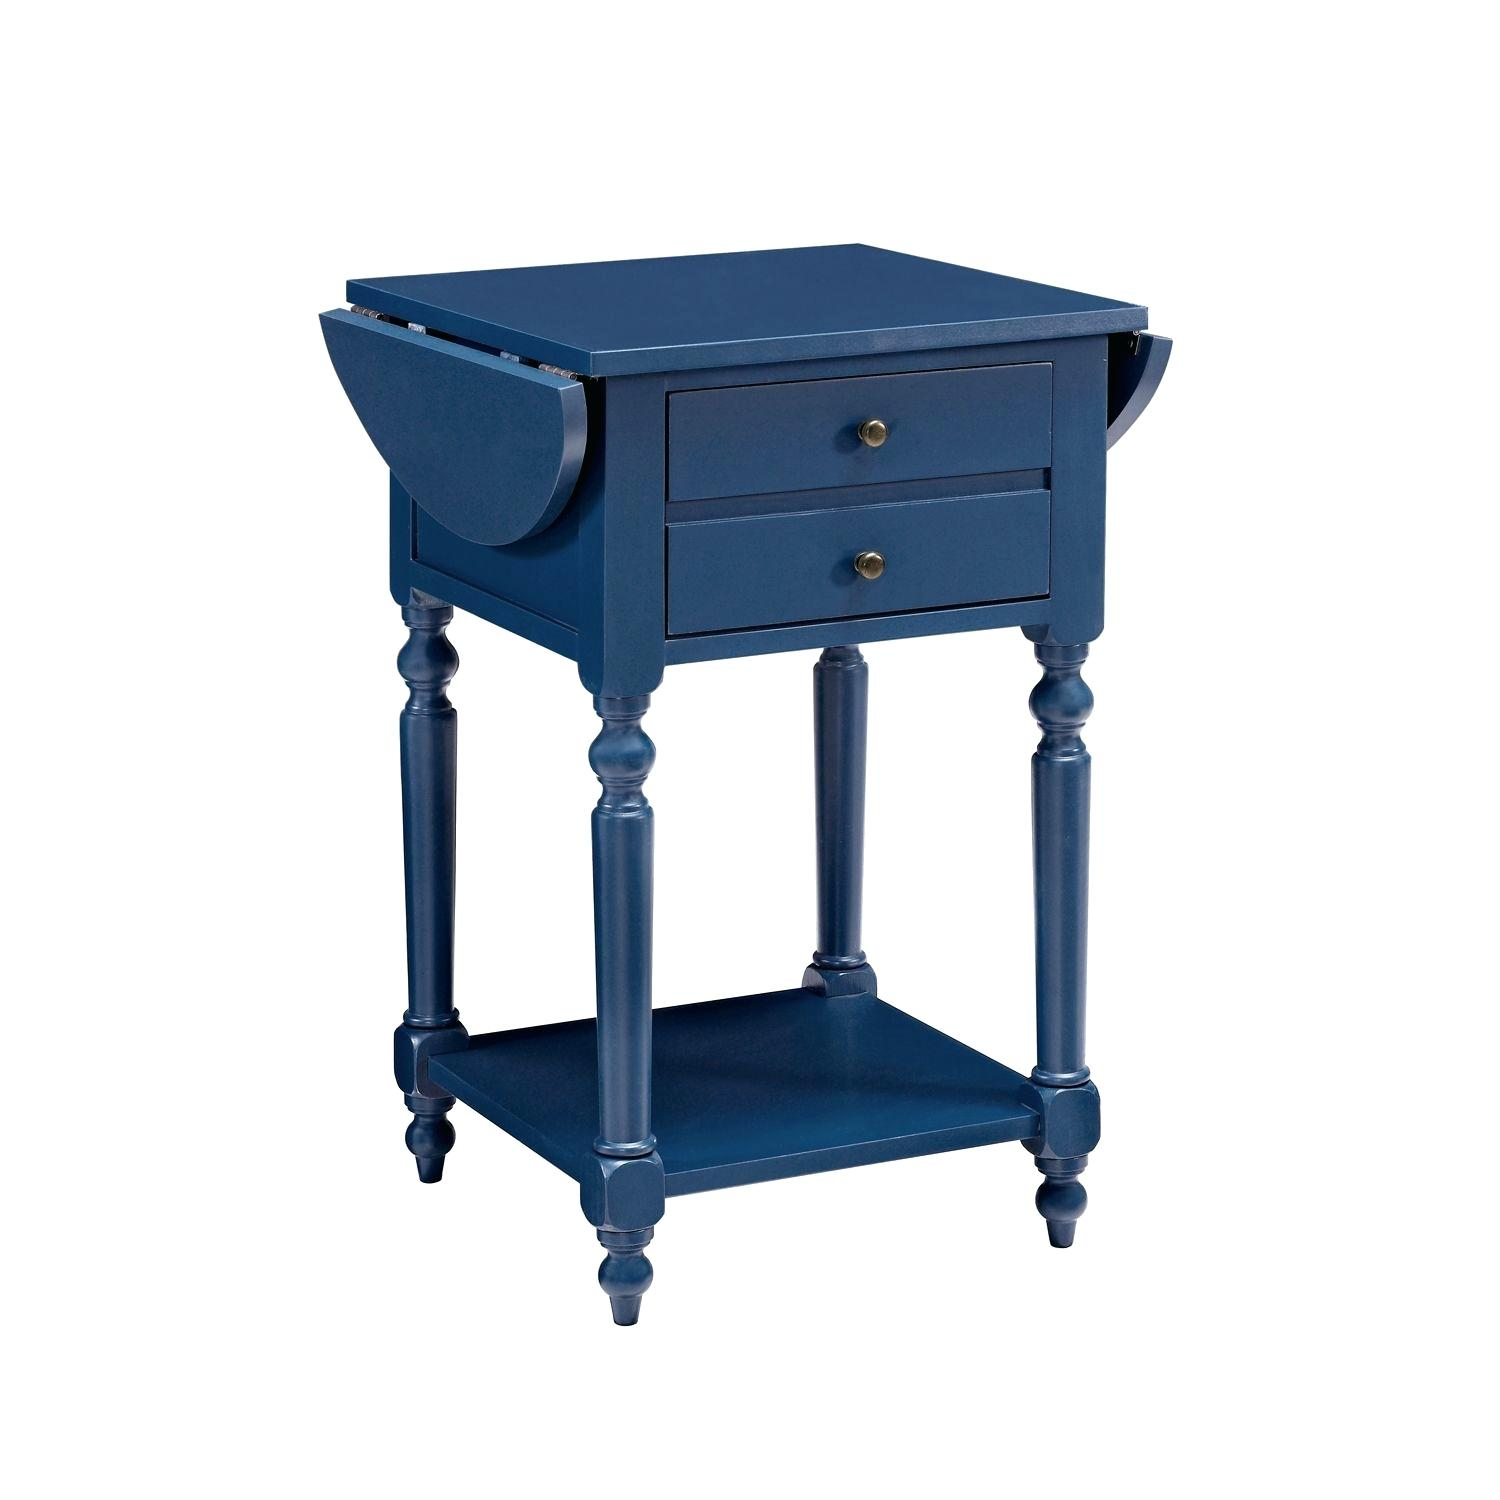 blue accent table navy side stylish outdoor ikea kids storage boxes fur furniture uma pier promo code safavieh brogen stackable plastic tables best drum throne patio end clearance